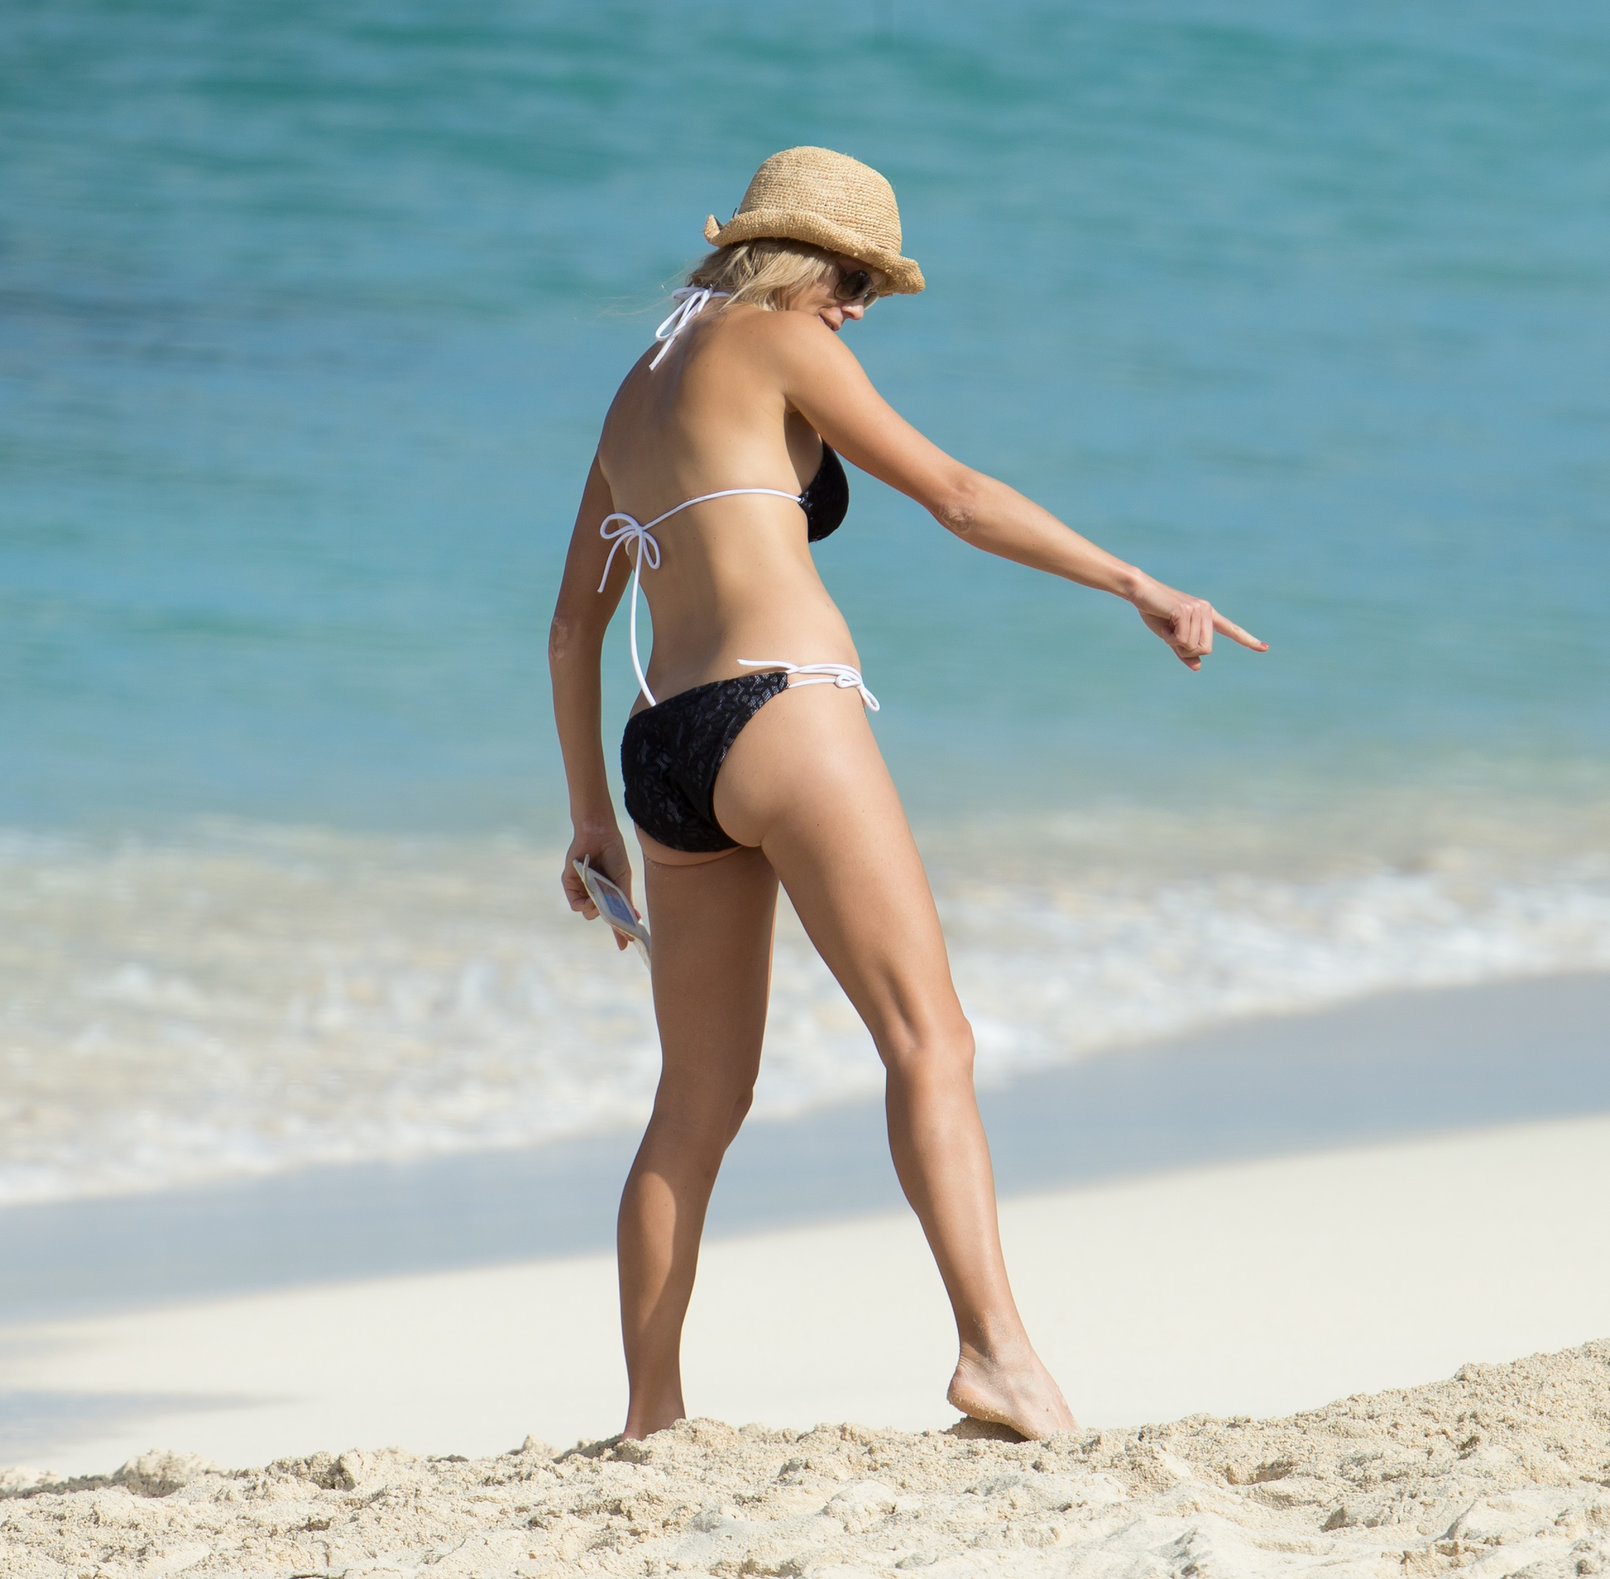 Elin Nordegren on the beach in the Bahamas (bikini) 1/6/13